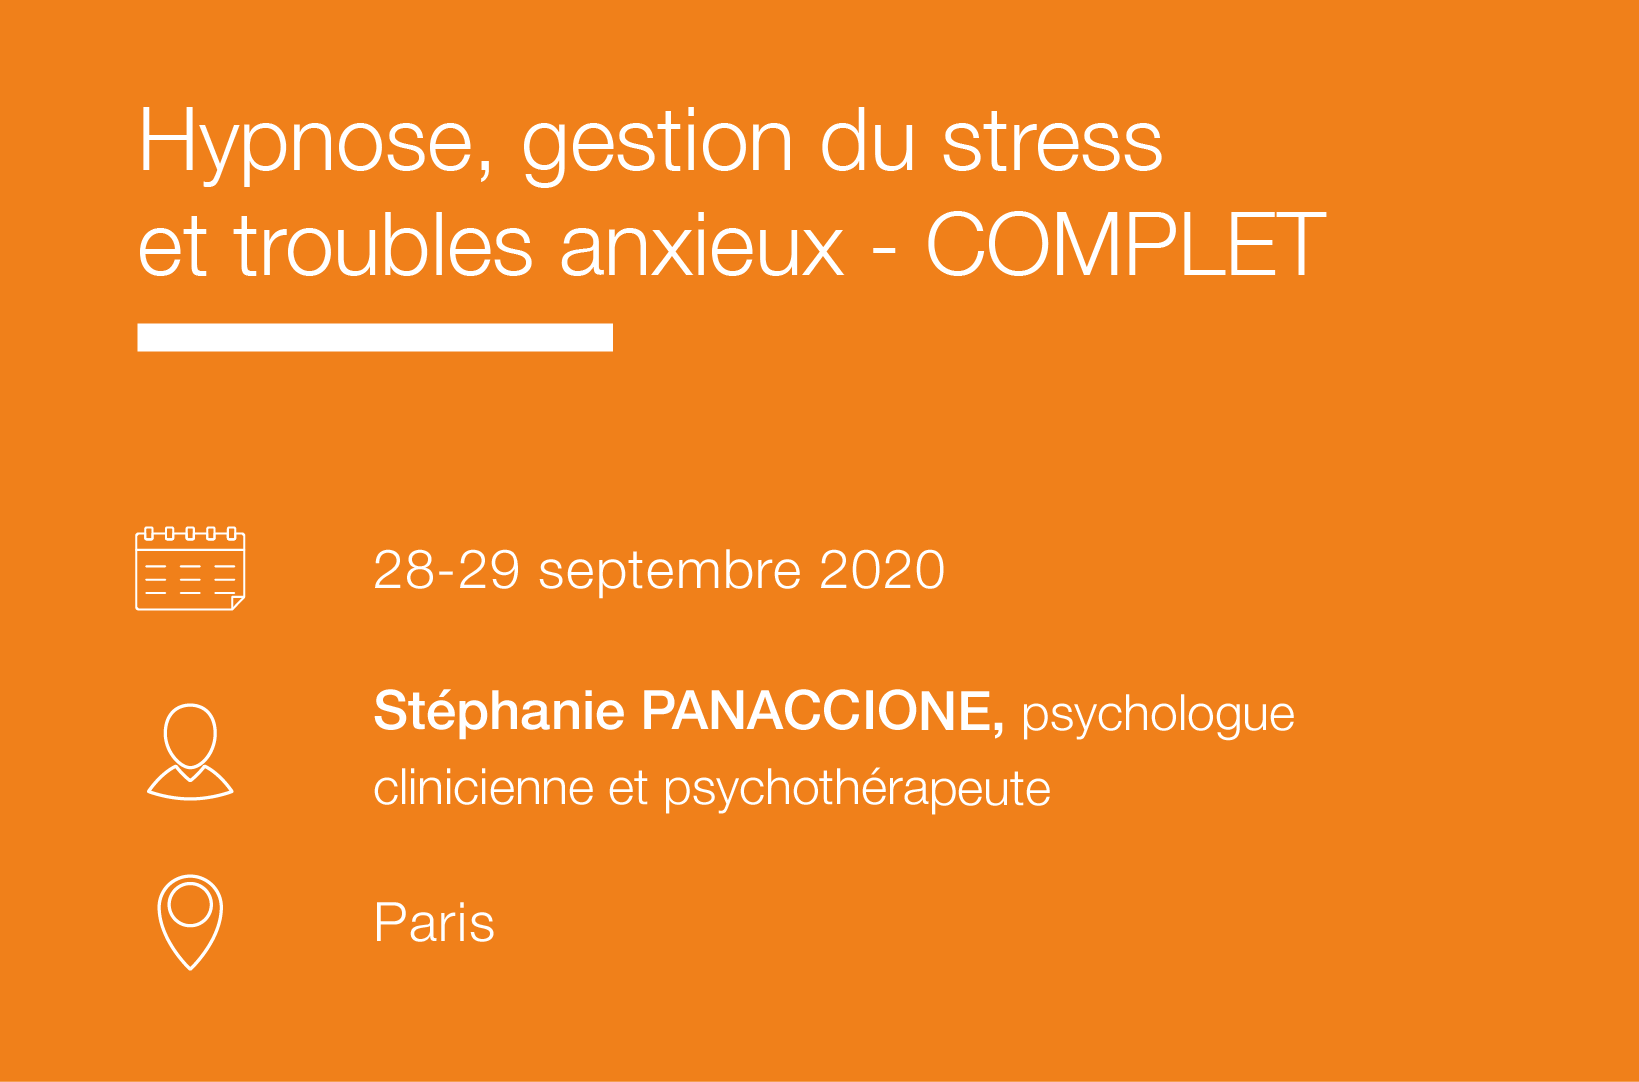 Seminaire Hypnose, gestion du stress et troubles anxieux-Complet IFH